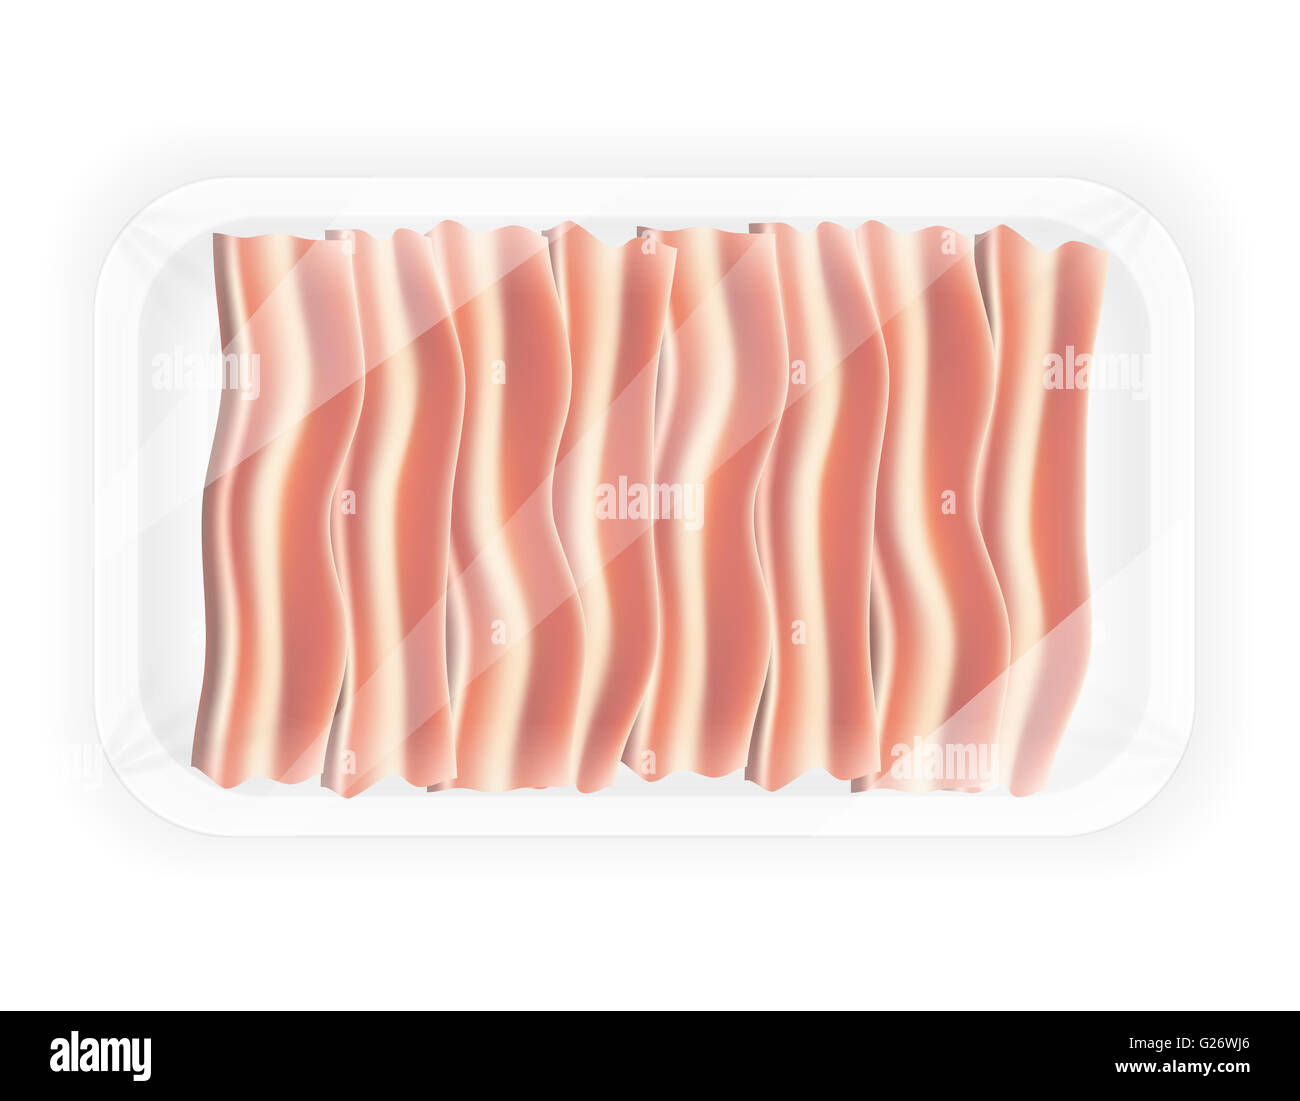 sliced bacon in the package illustration isolated on white background - Stock Image